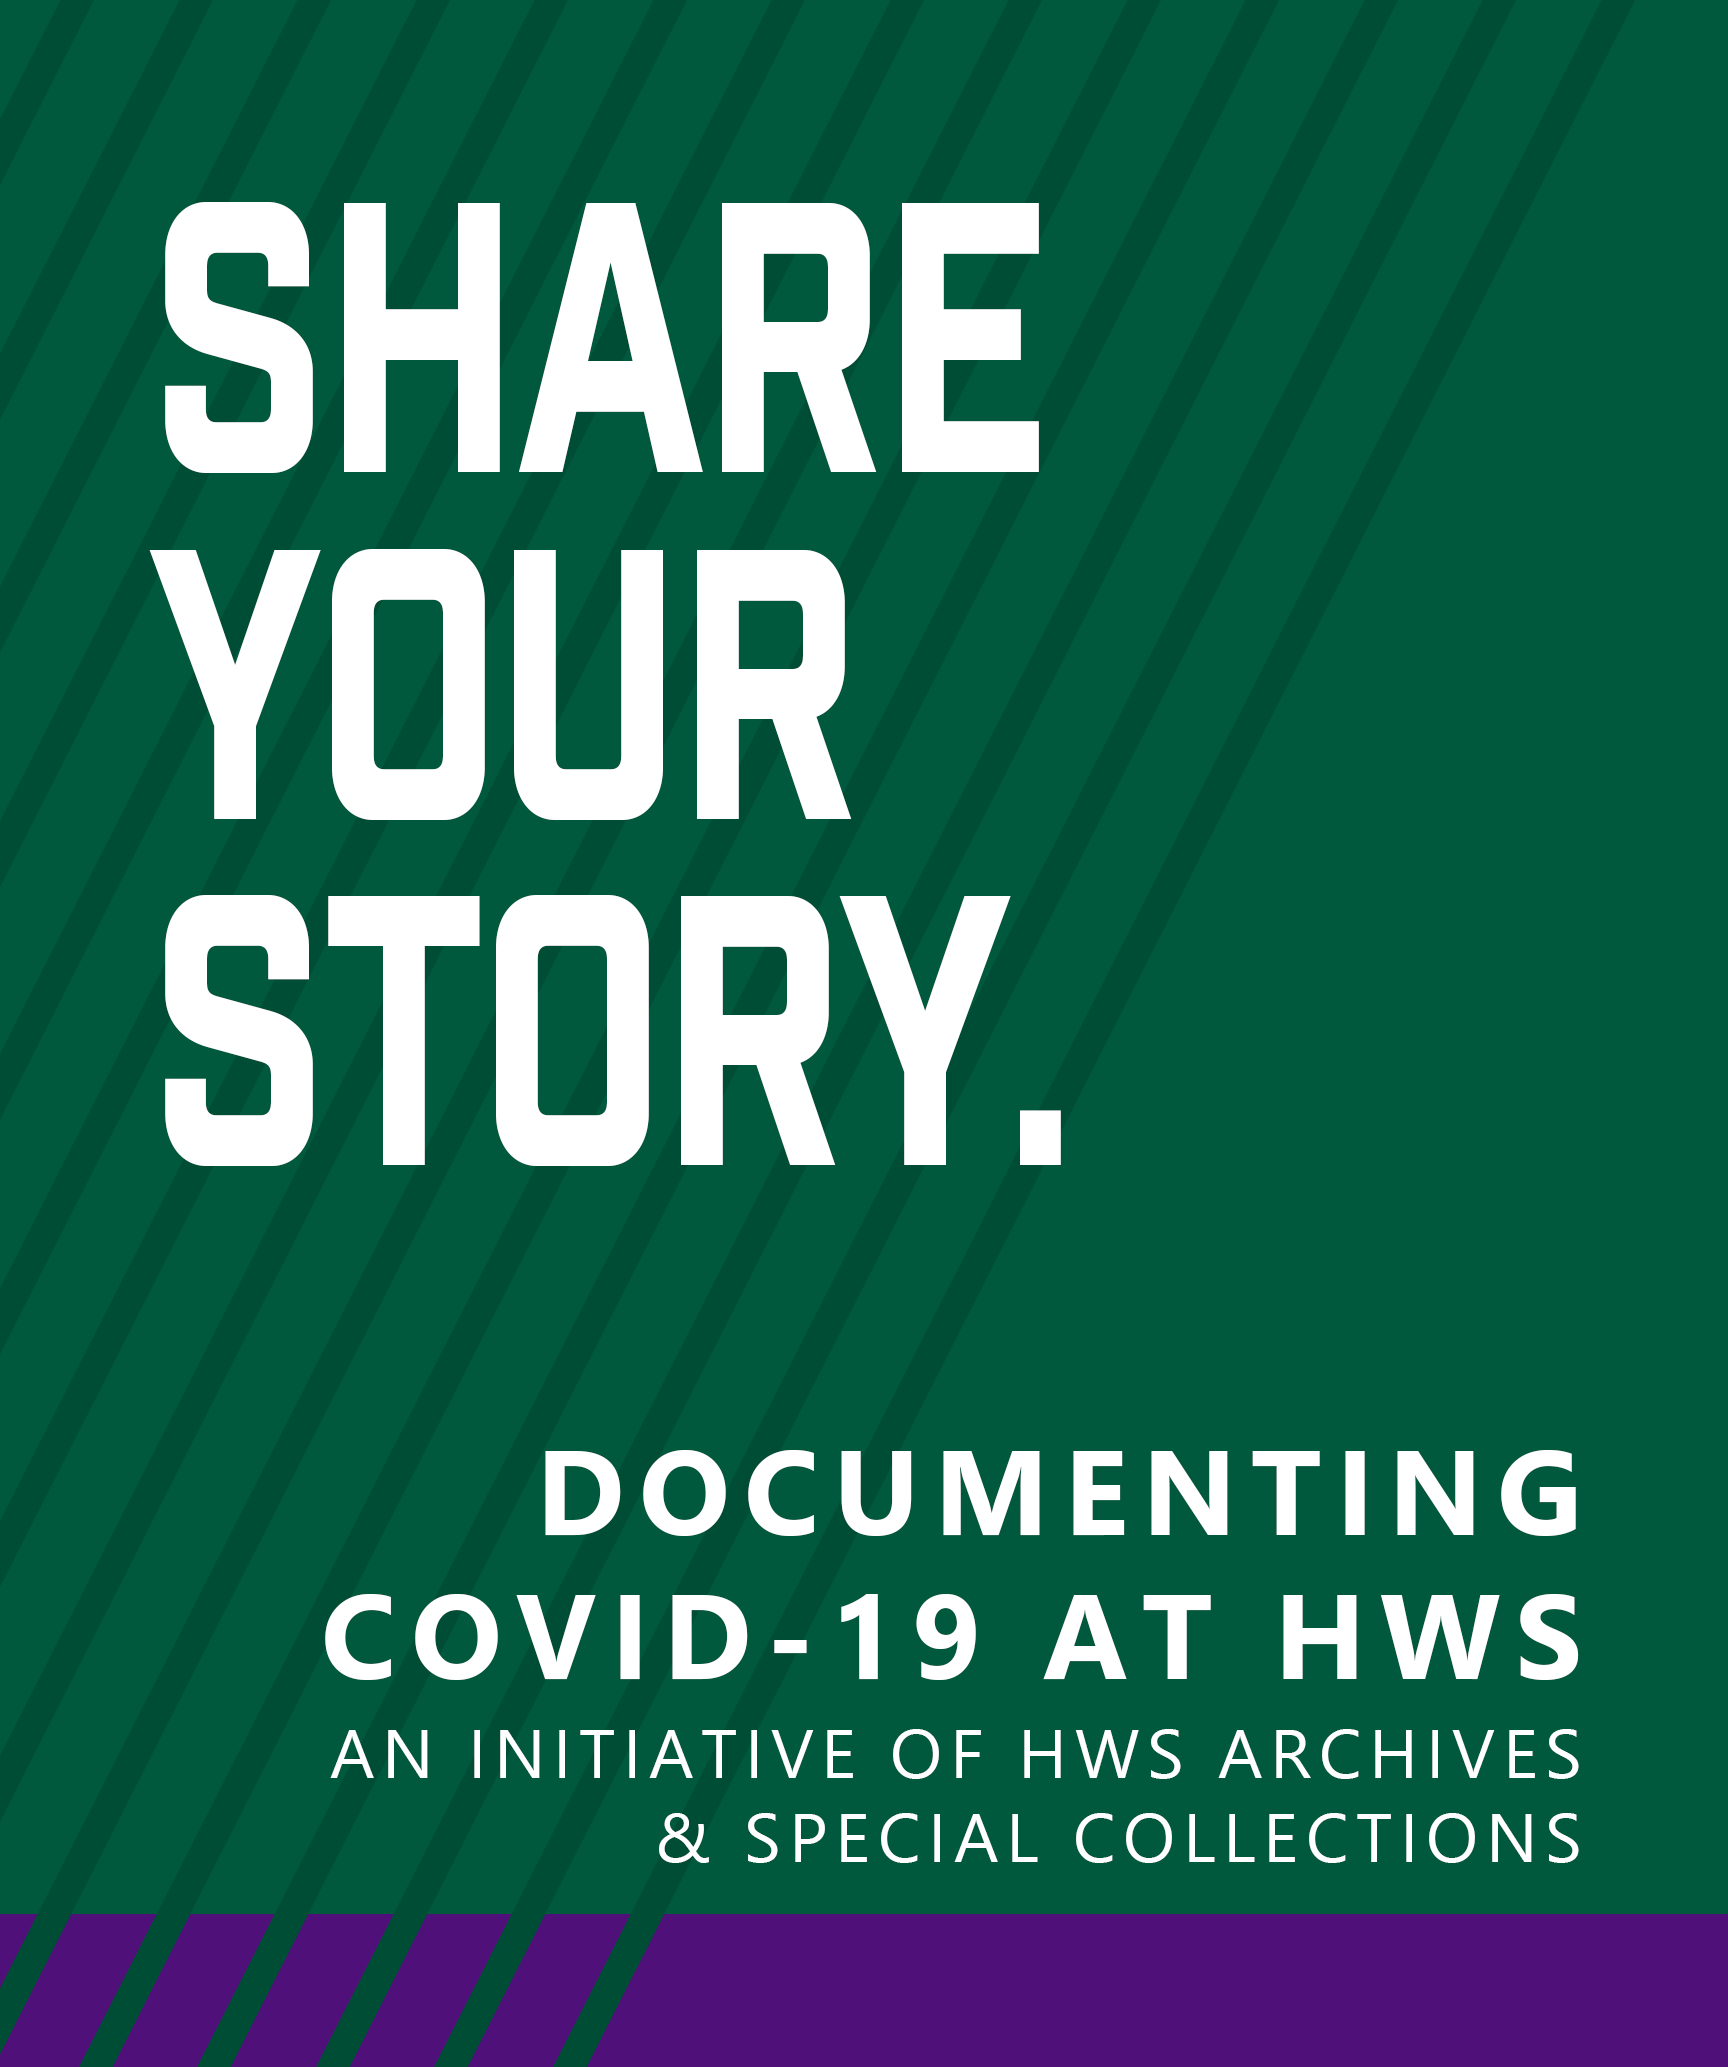 Share Your Story: Documenting COVID-19 at HWS